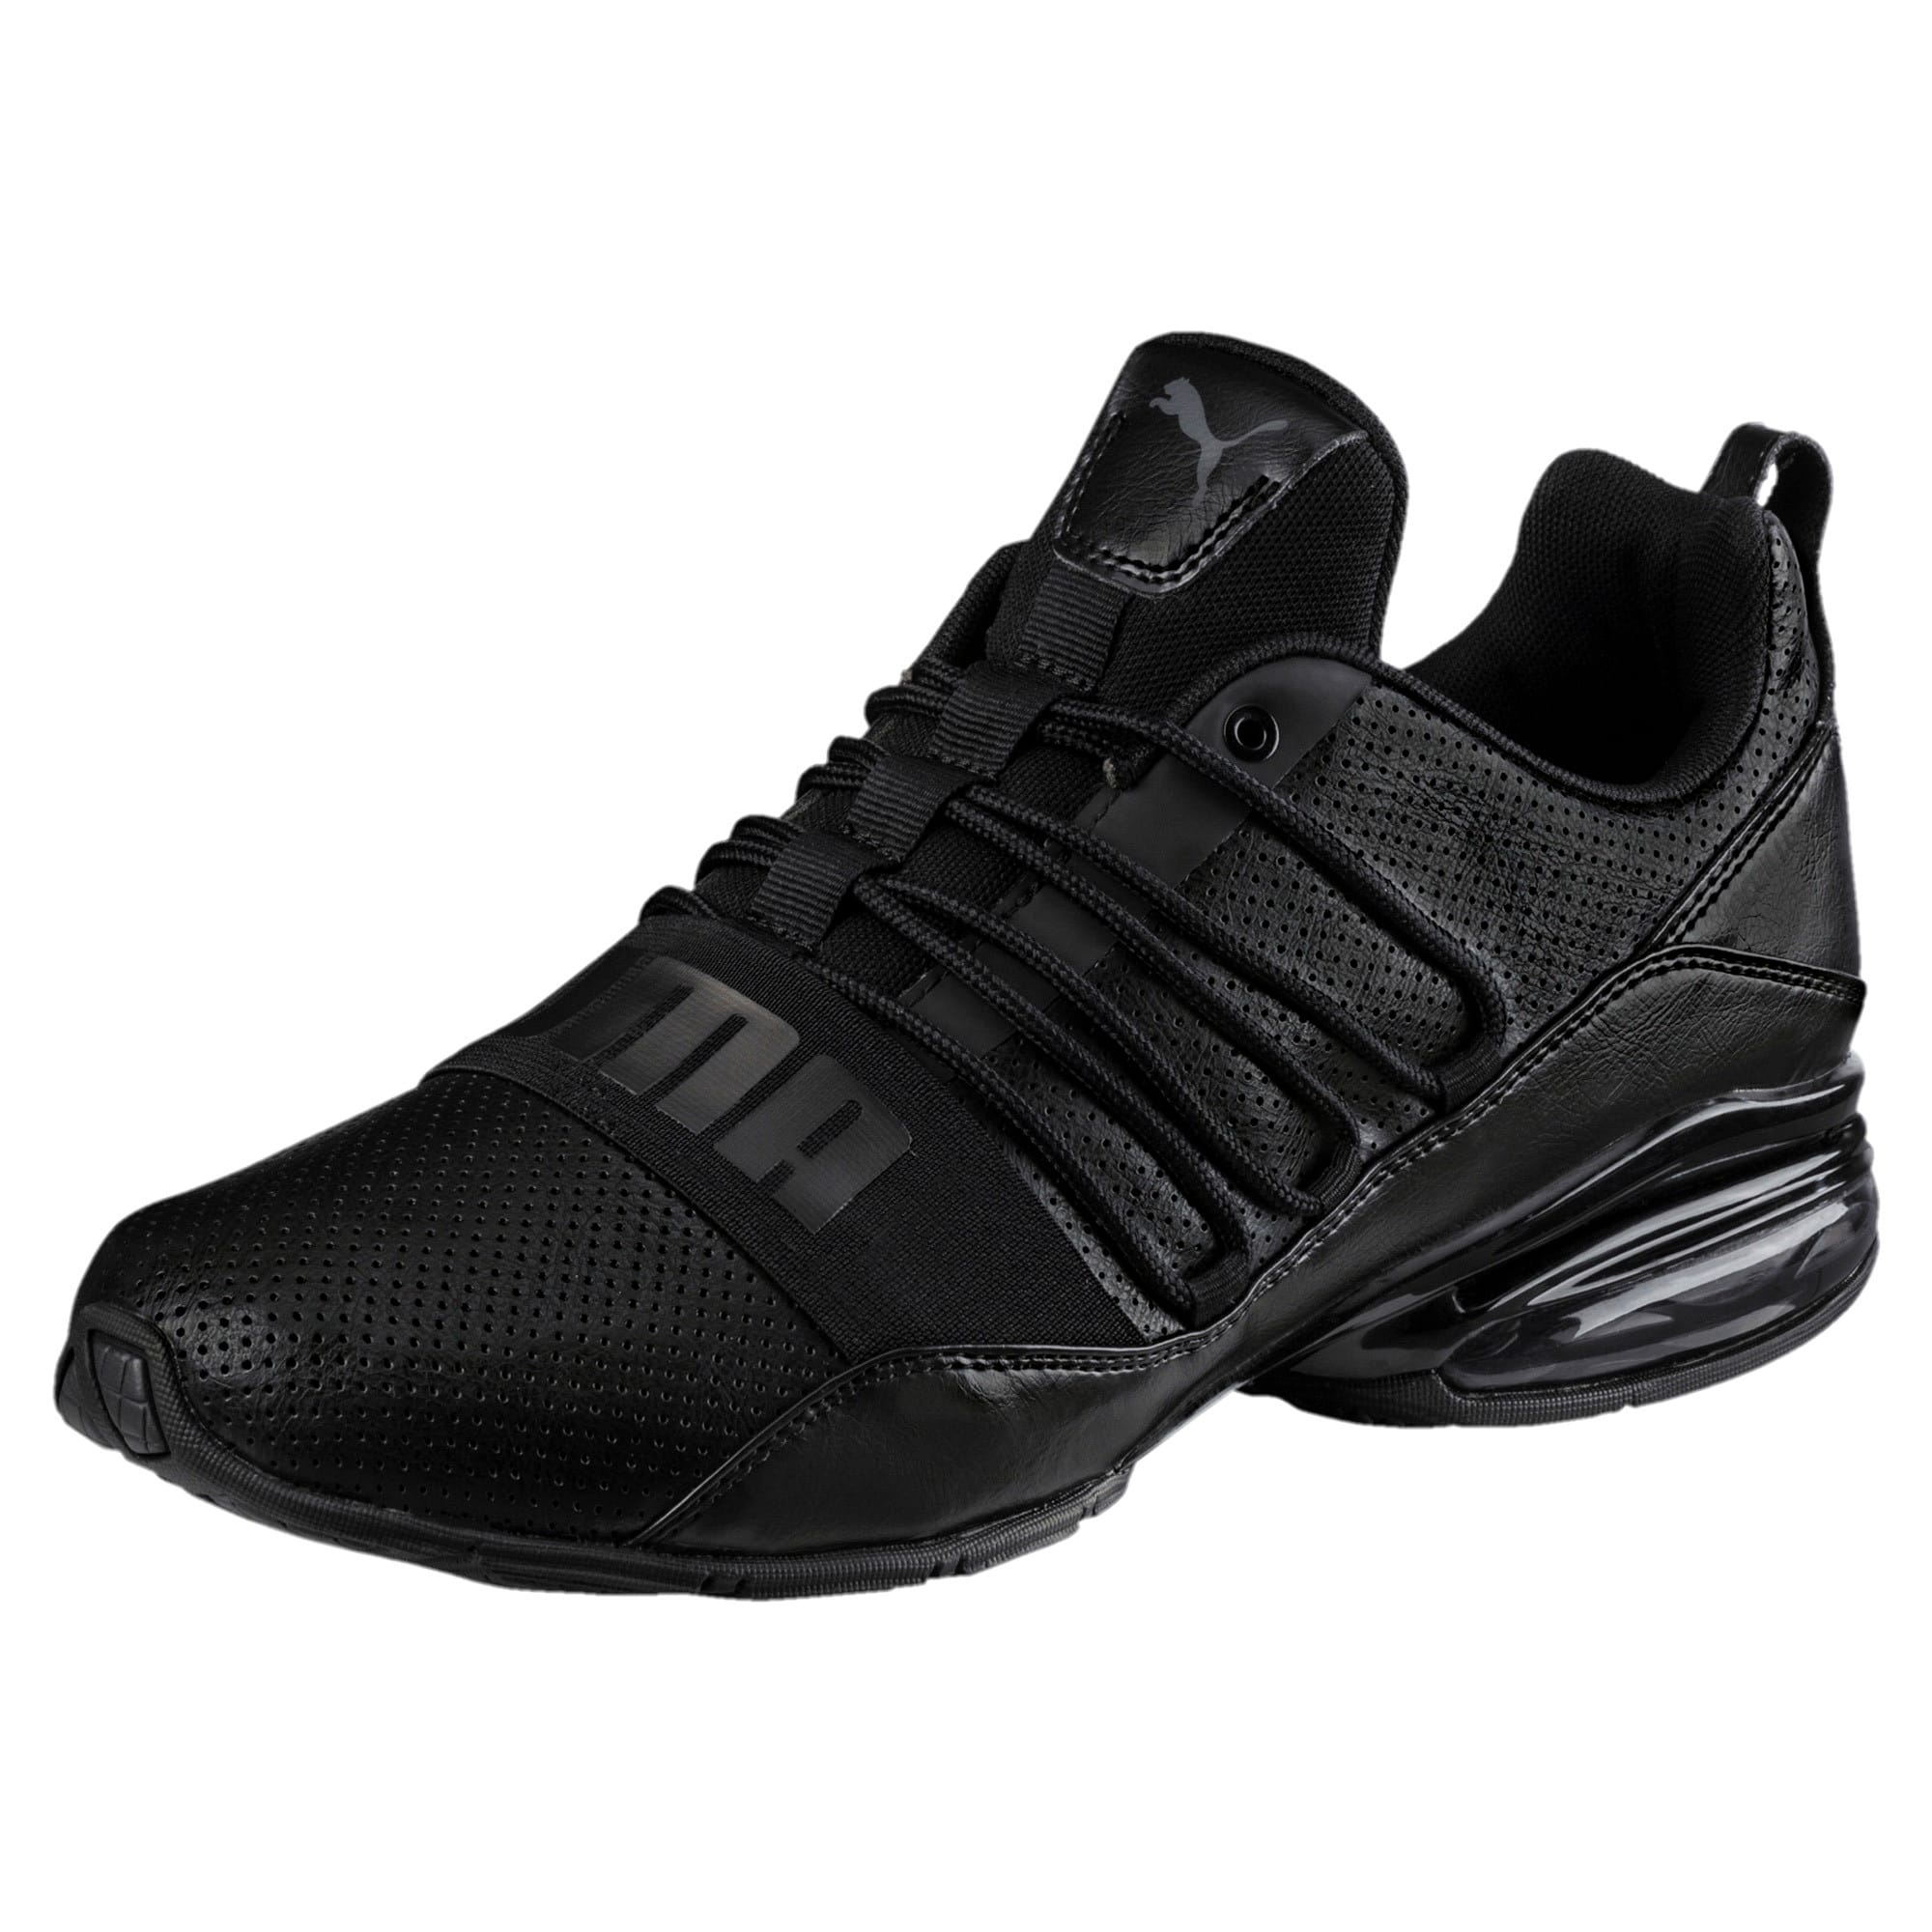 Cell Regulate Men's Running Shoes, Puma Black-Dark Shadow, large